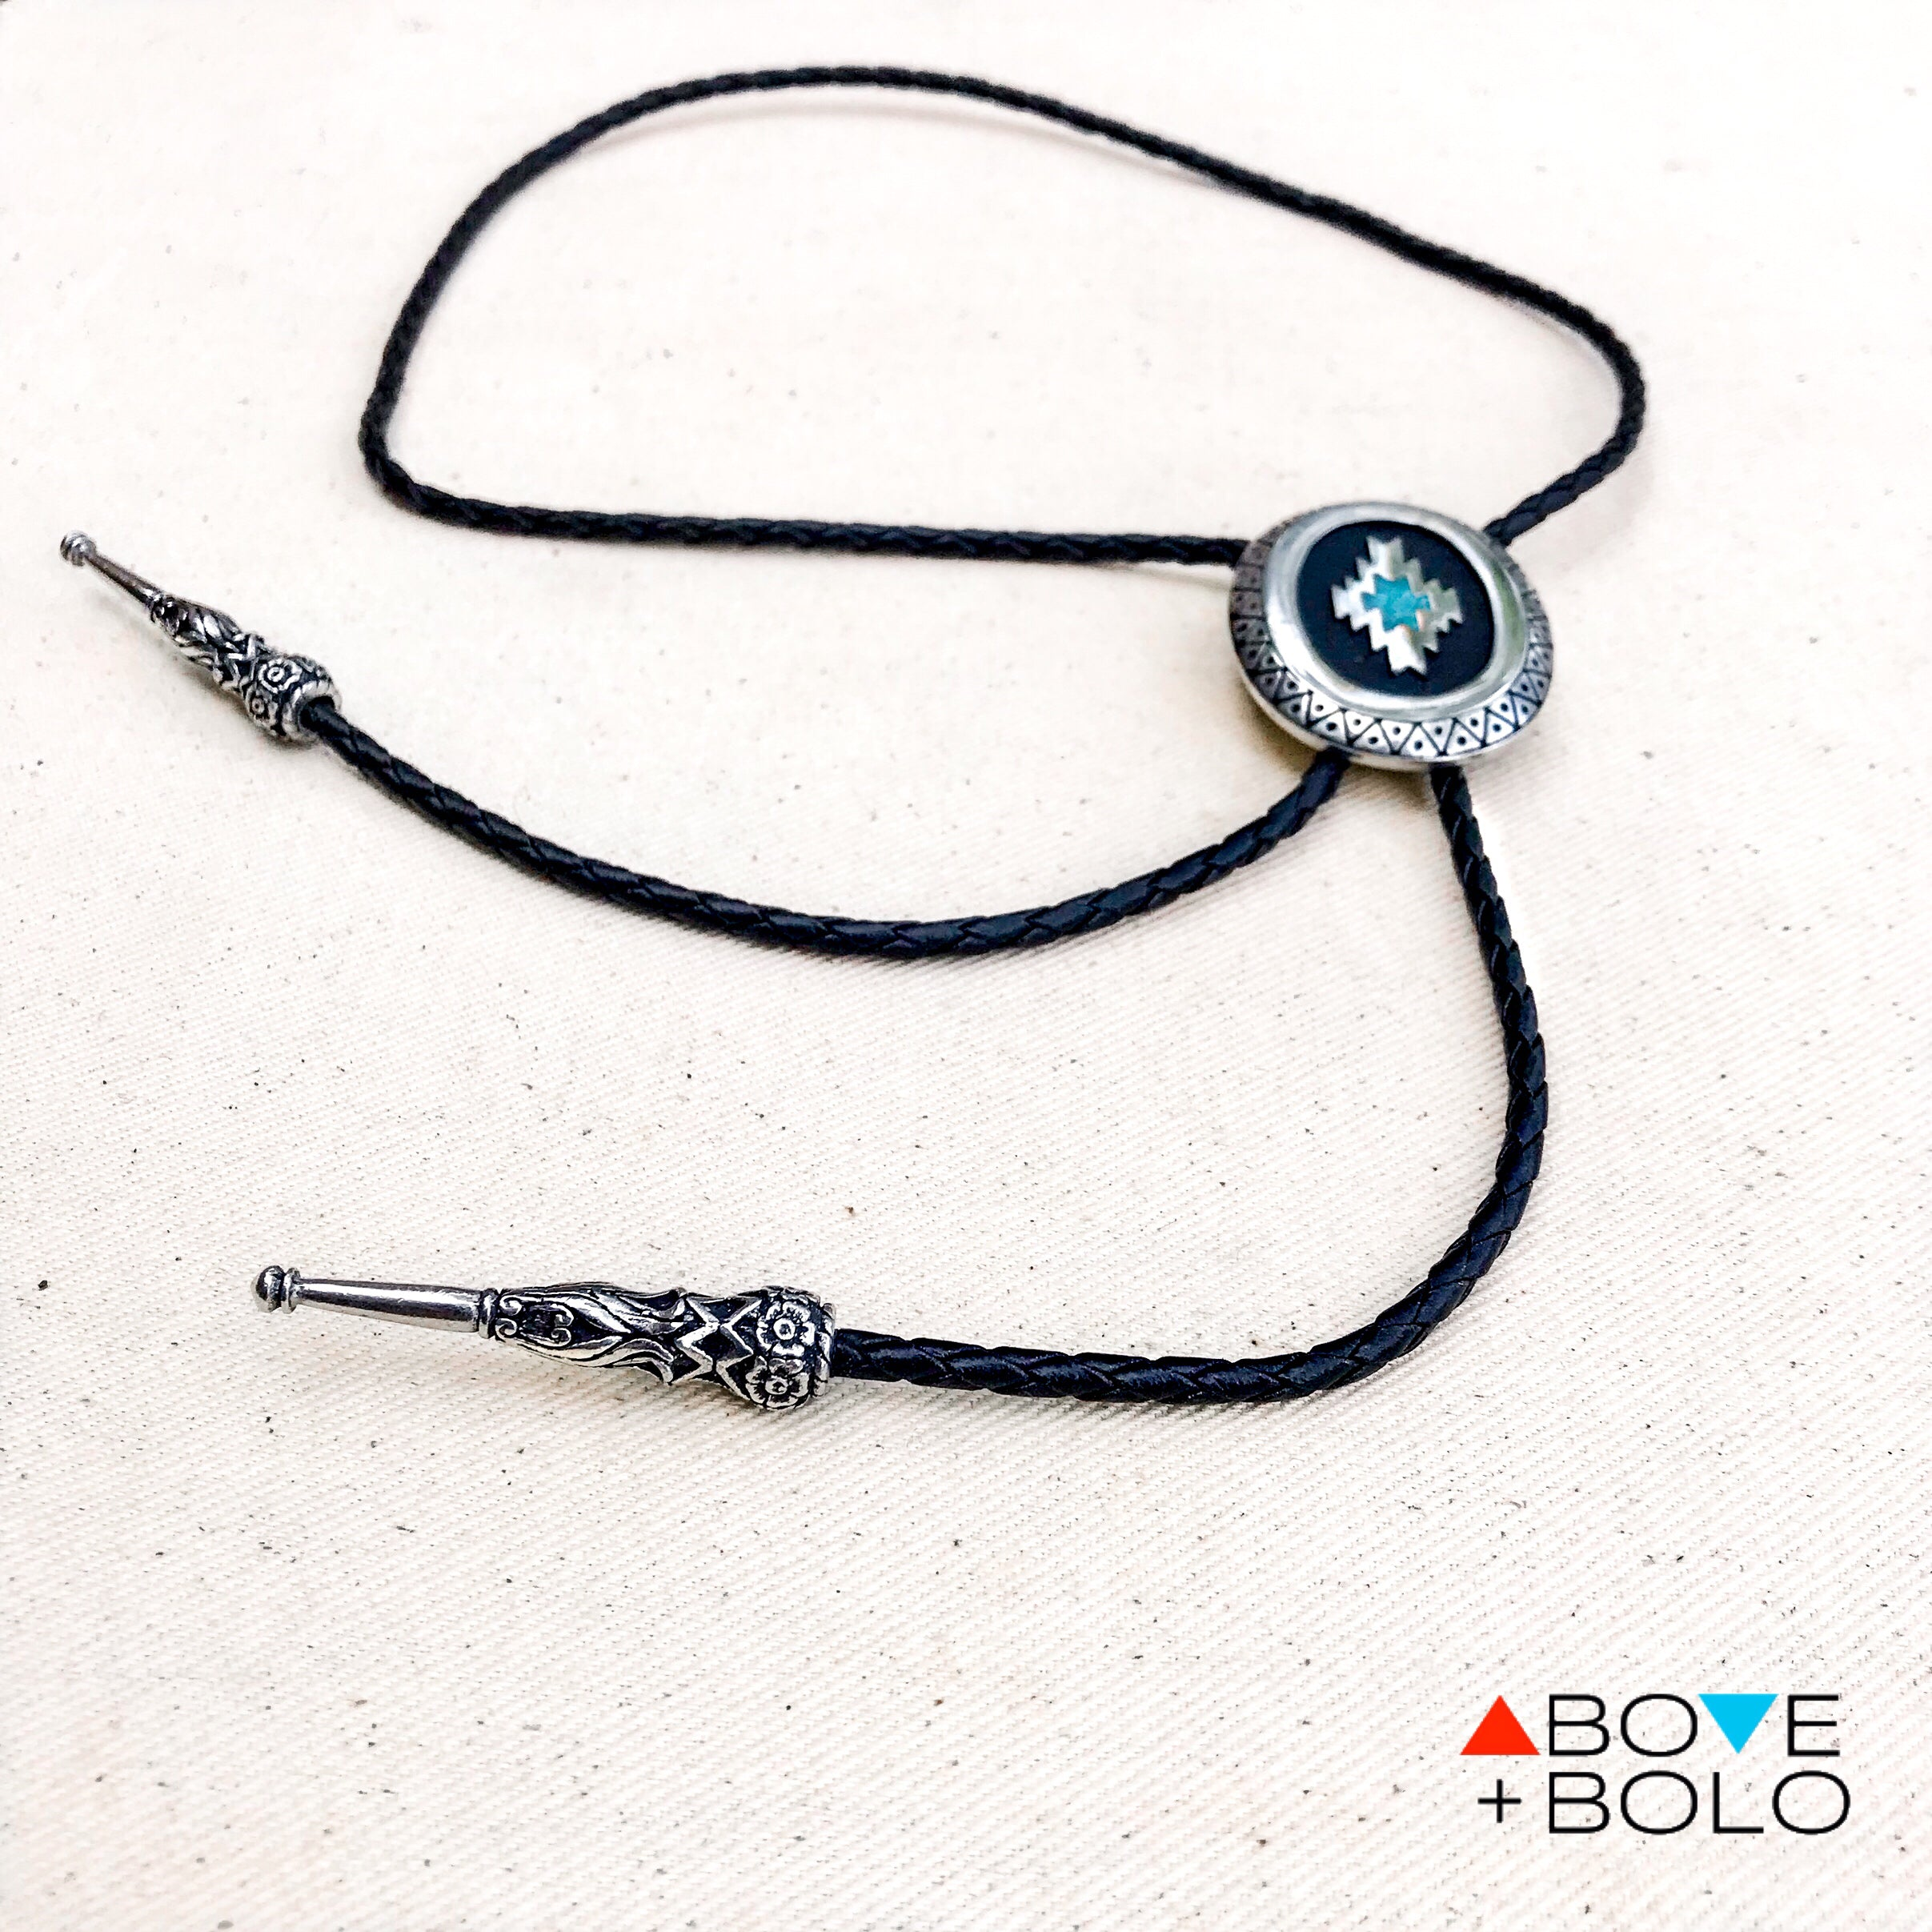 03172200128e ... photo of turquoise chip inlay bolo tie with an oval pendant and · turquoise  chip inlay bolo tie with an oval pendant and geometric design close up ...